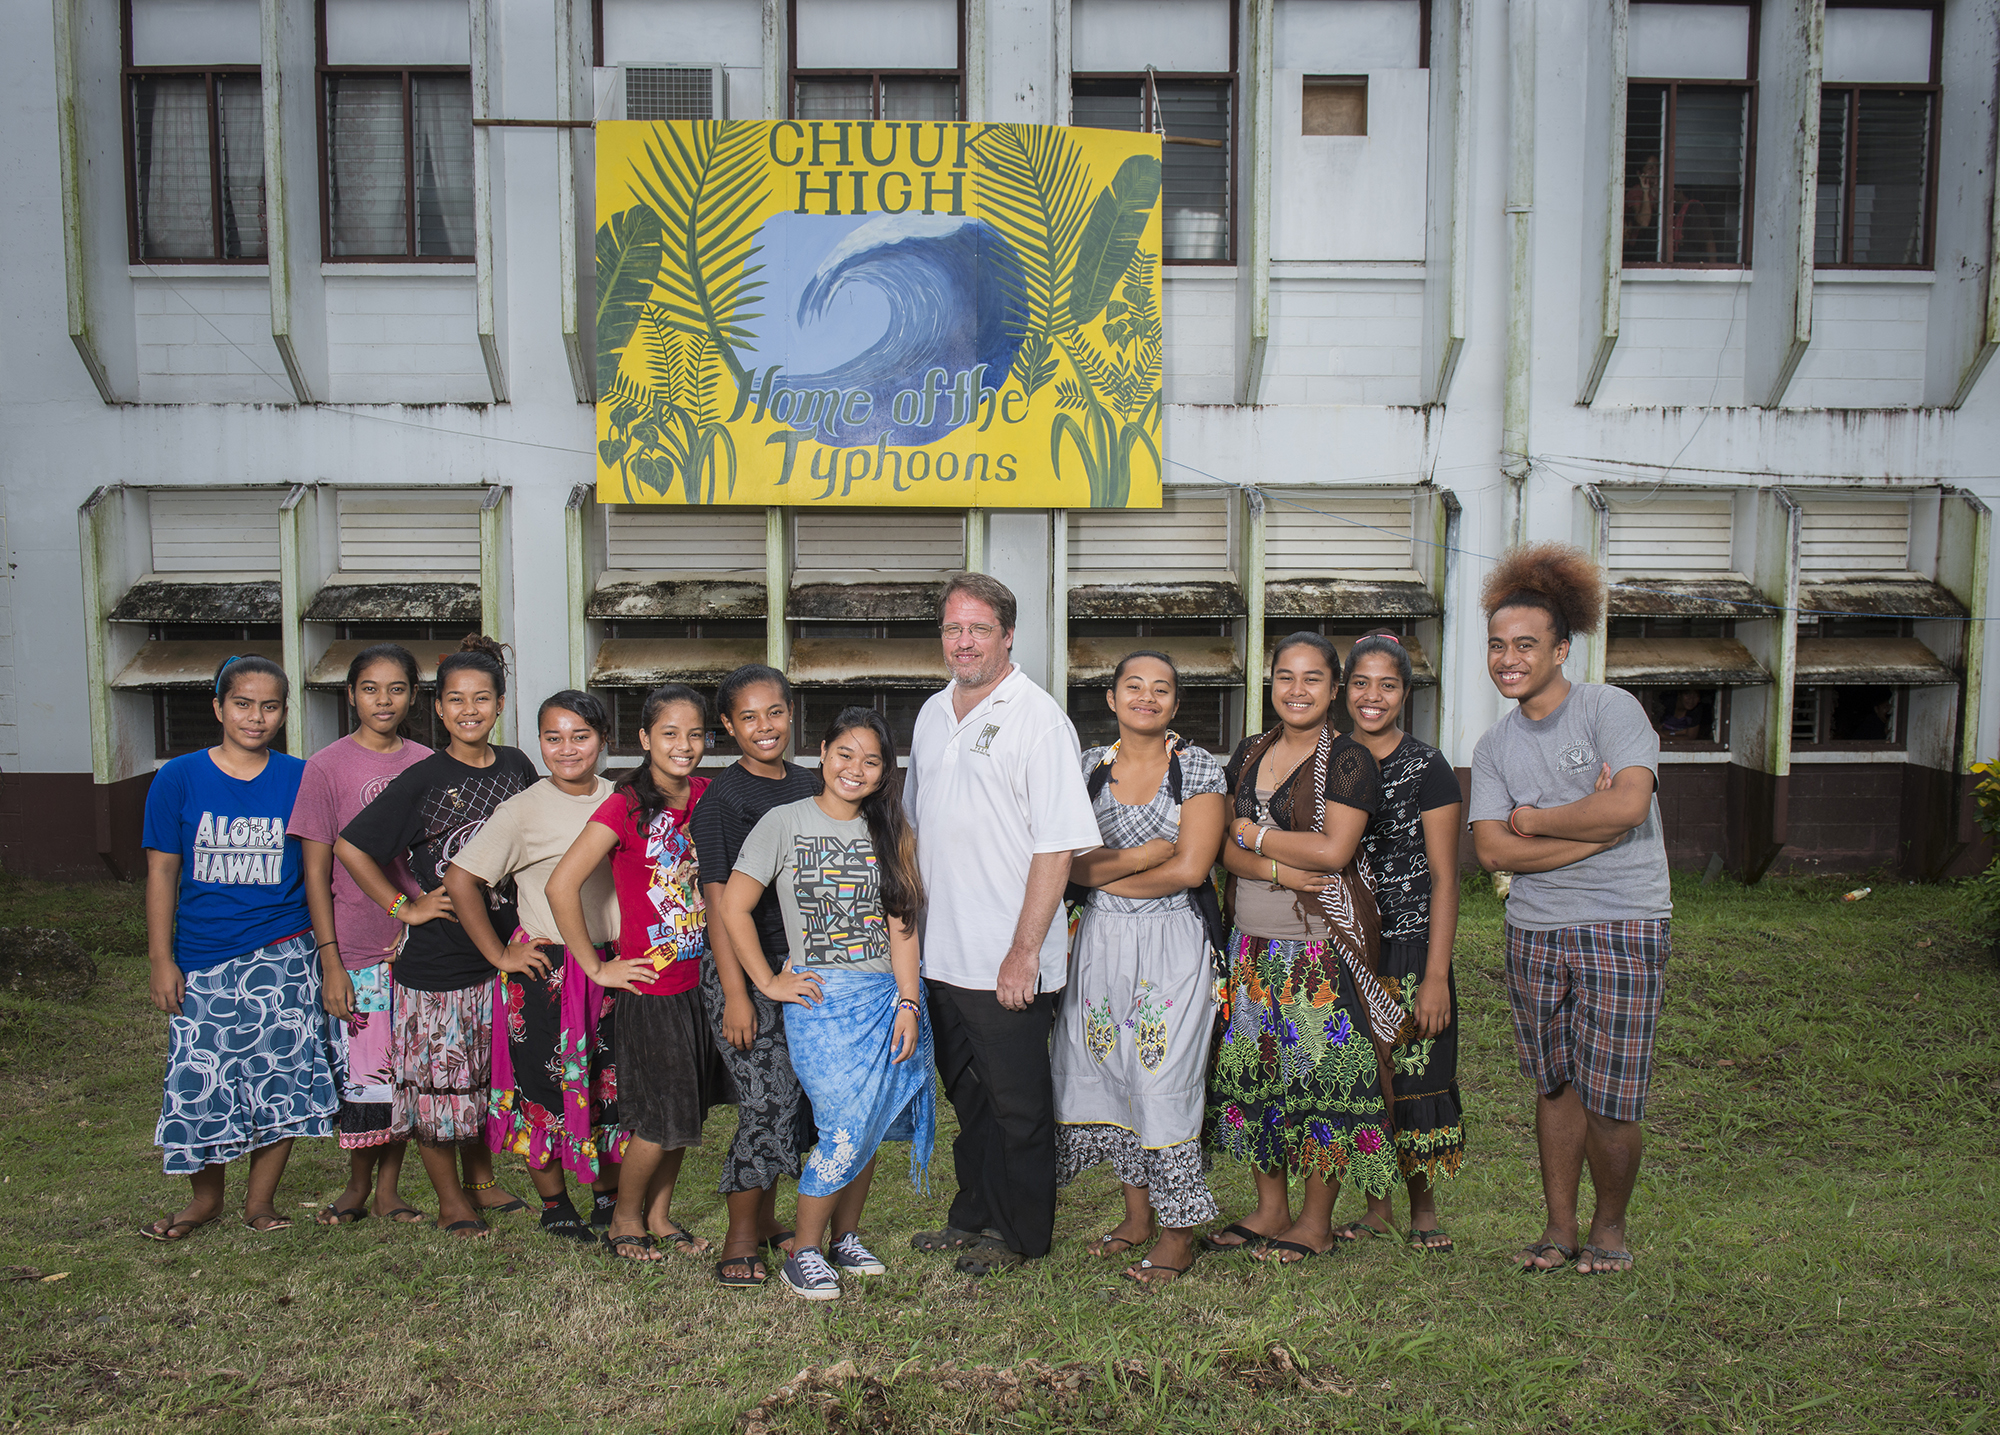 <p>Chuuk High School Principal Paul Hadik tries to stretch limited financial resources from the government to educate his students. The school recently opened a kindergarten program.</p>